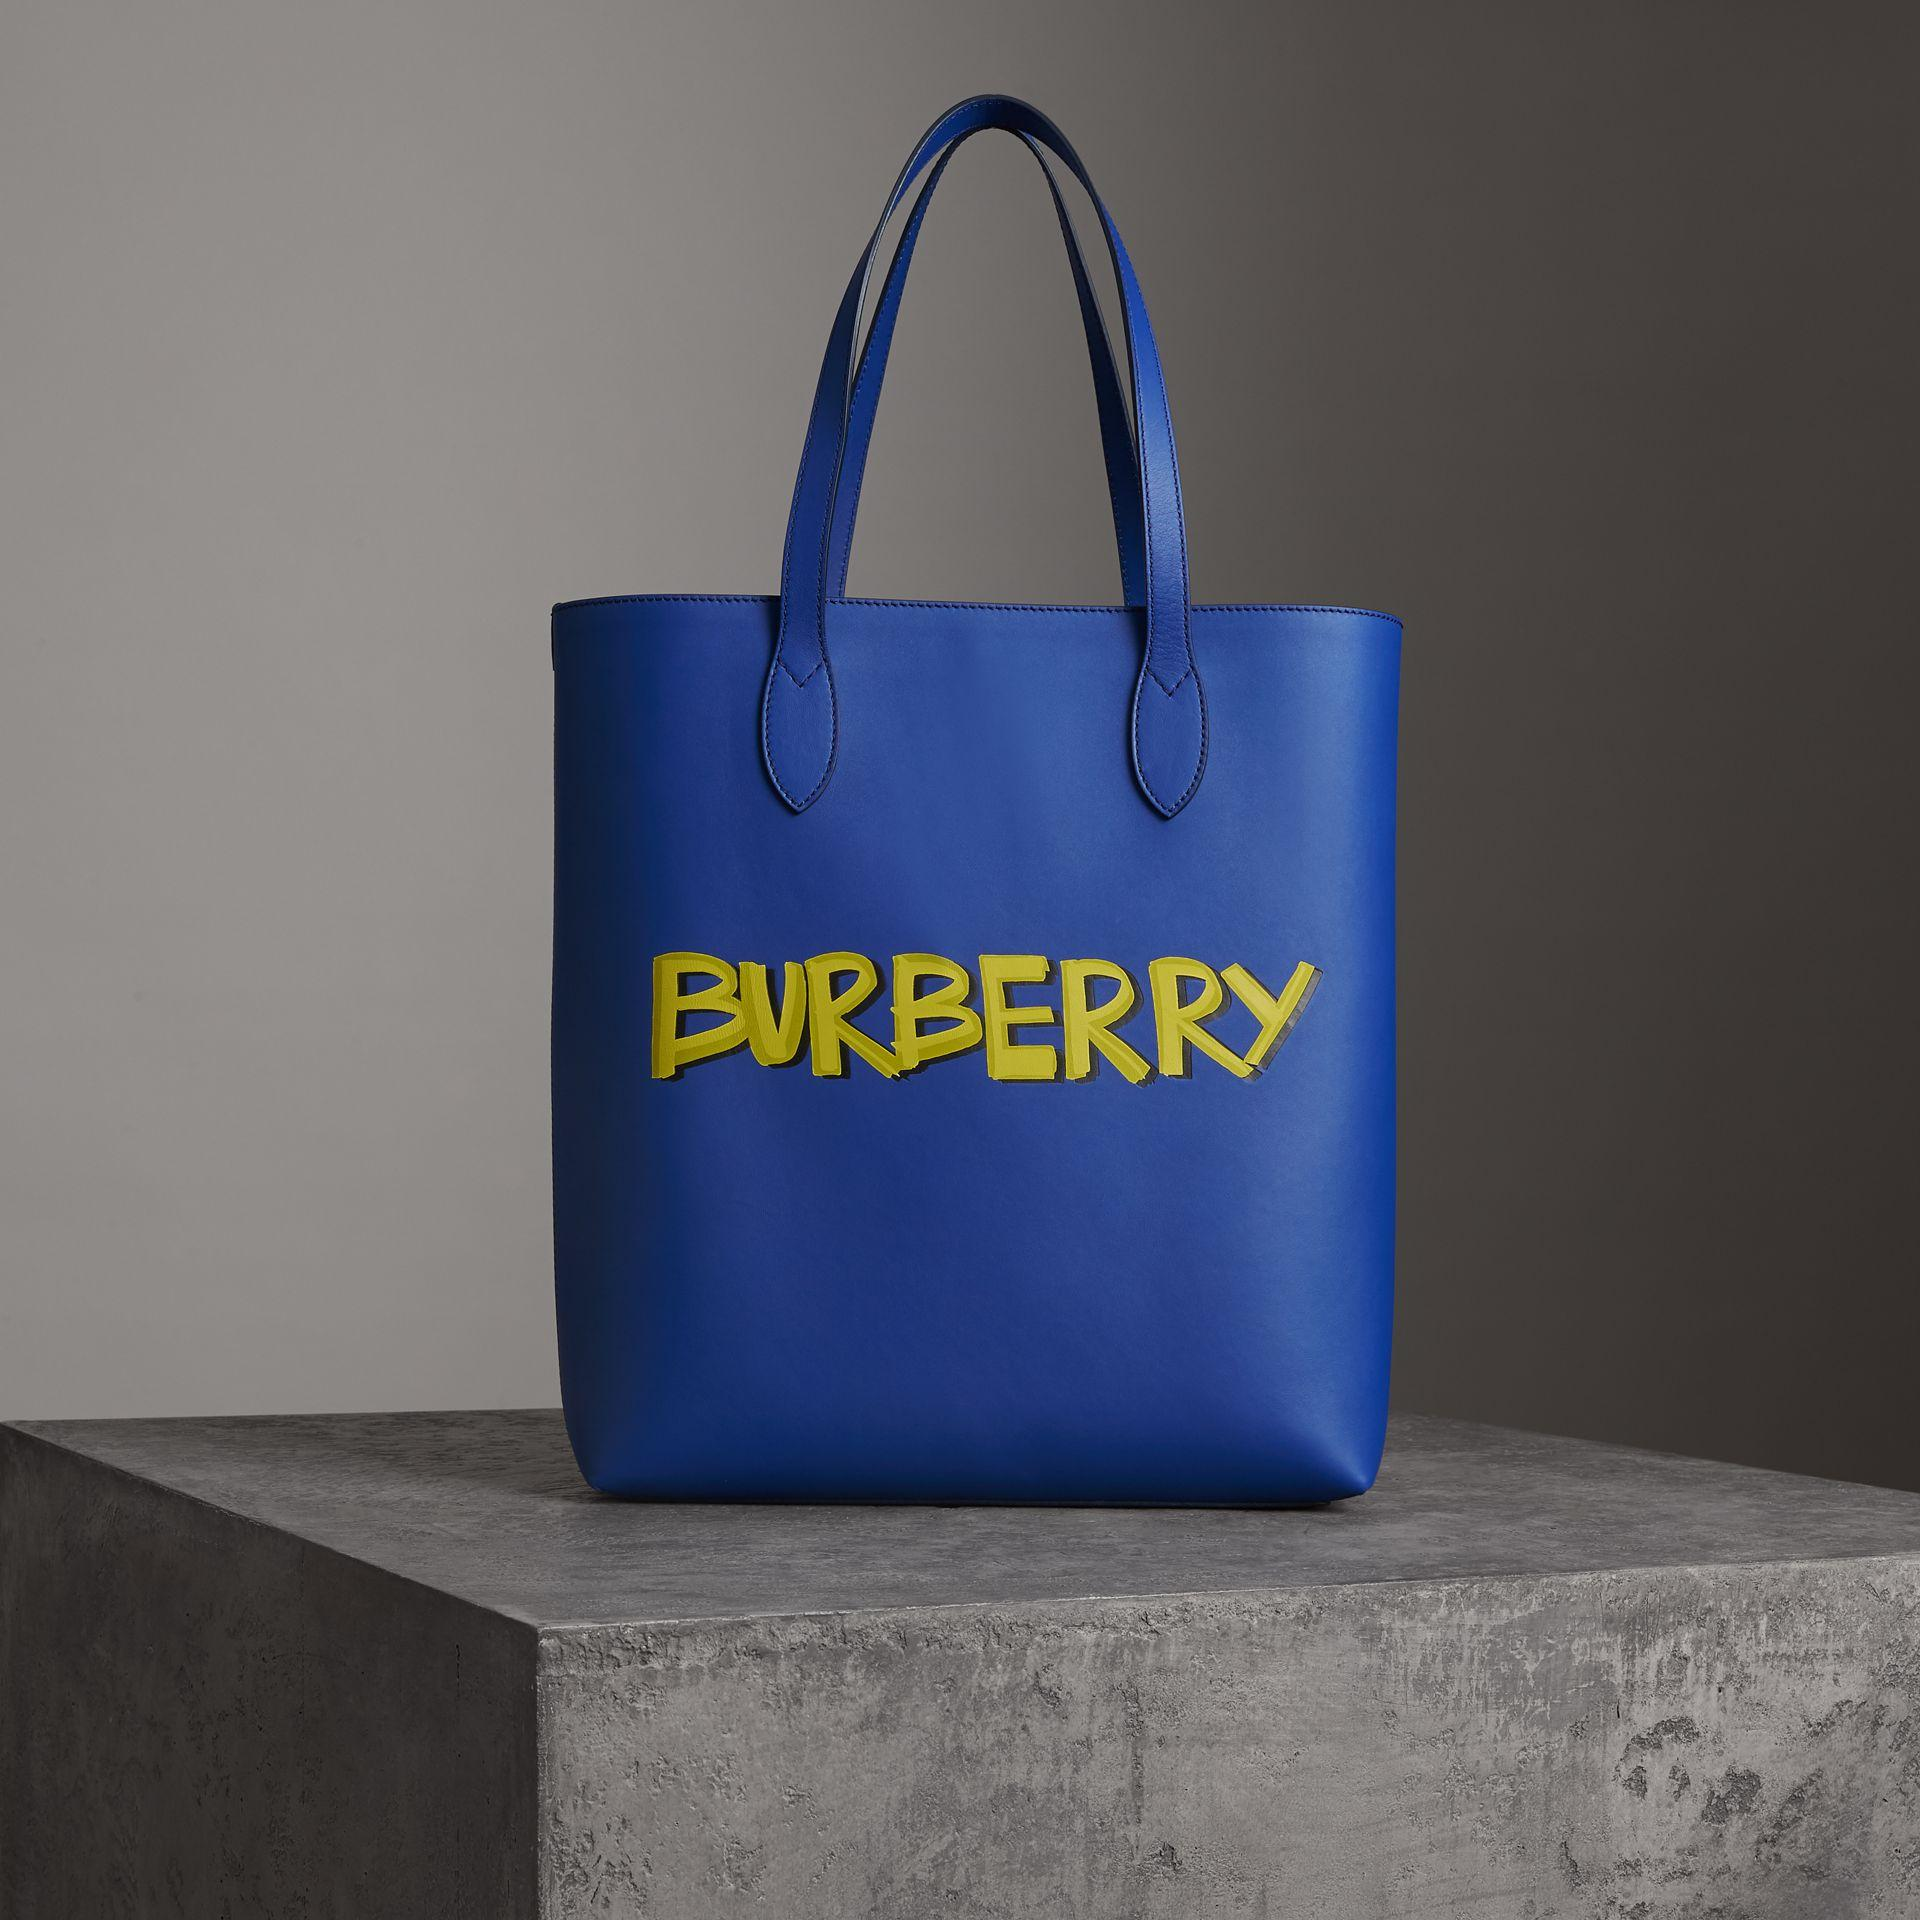 2d3e81ba6153 Burberry Graffiti Print Bonded Leather Tote In Denim Blue